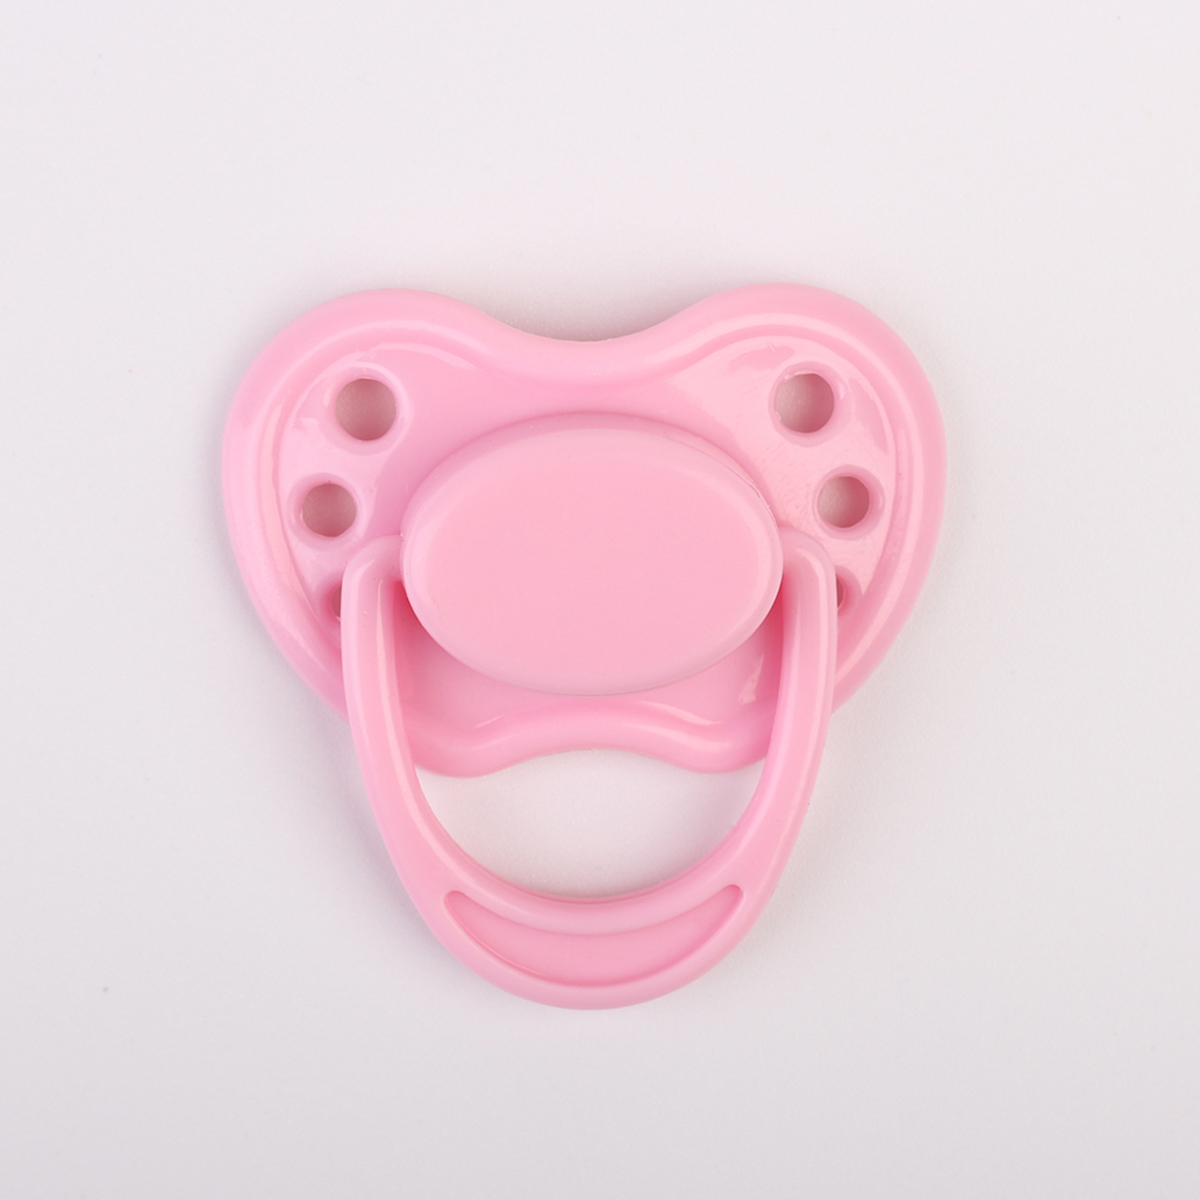 Pink Feeding Bottle Dummy Pacifier Set For Reborn Baby Dolls Accessories in Lots